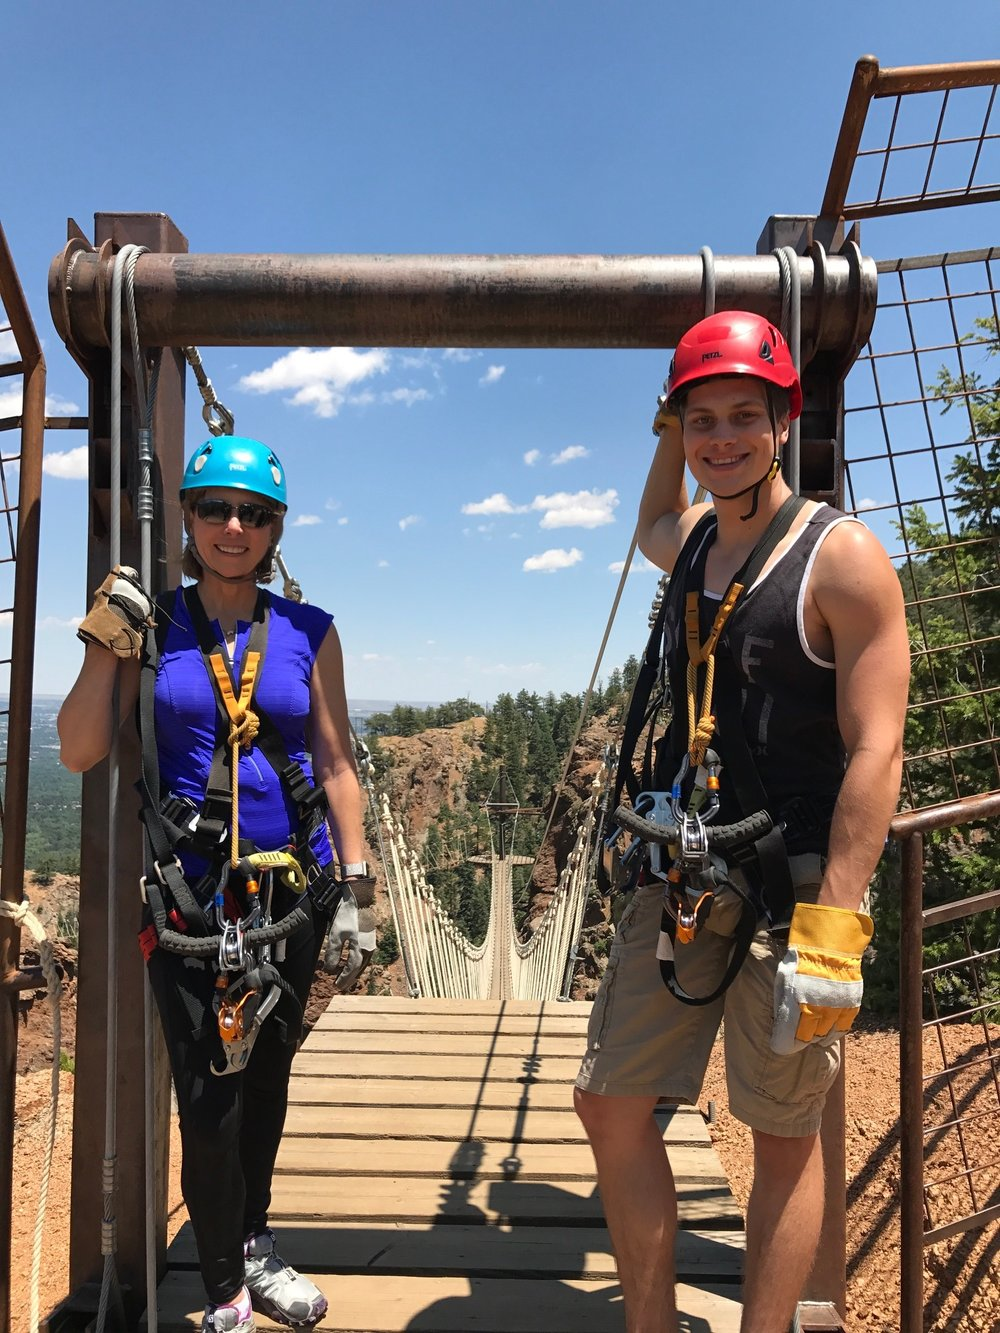 Pam Keller and her son, David, at The Broadmoor's    Soaring Adventure at Seven Falls